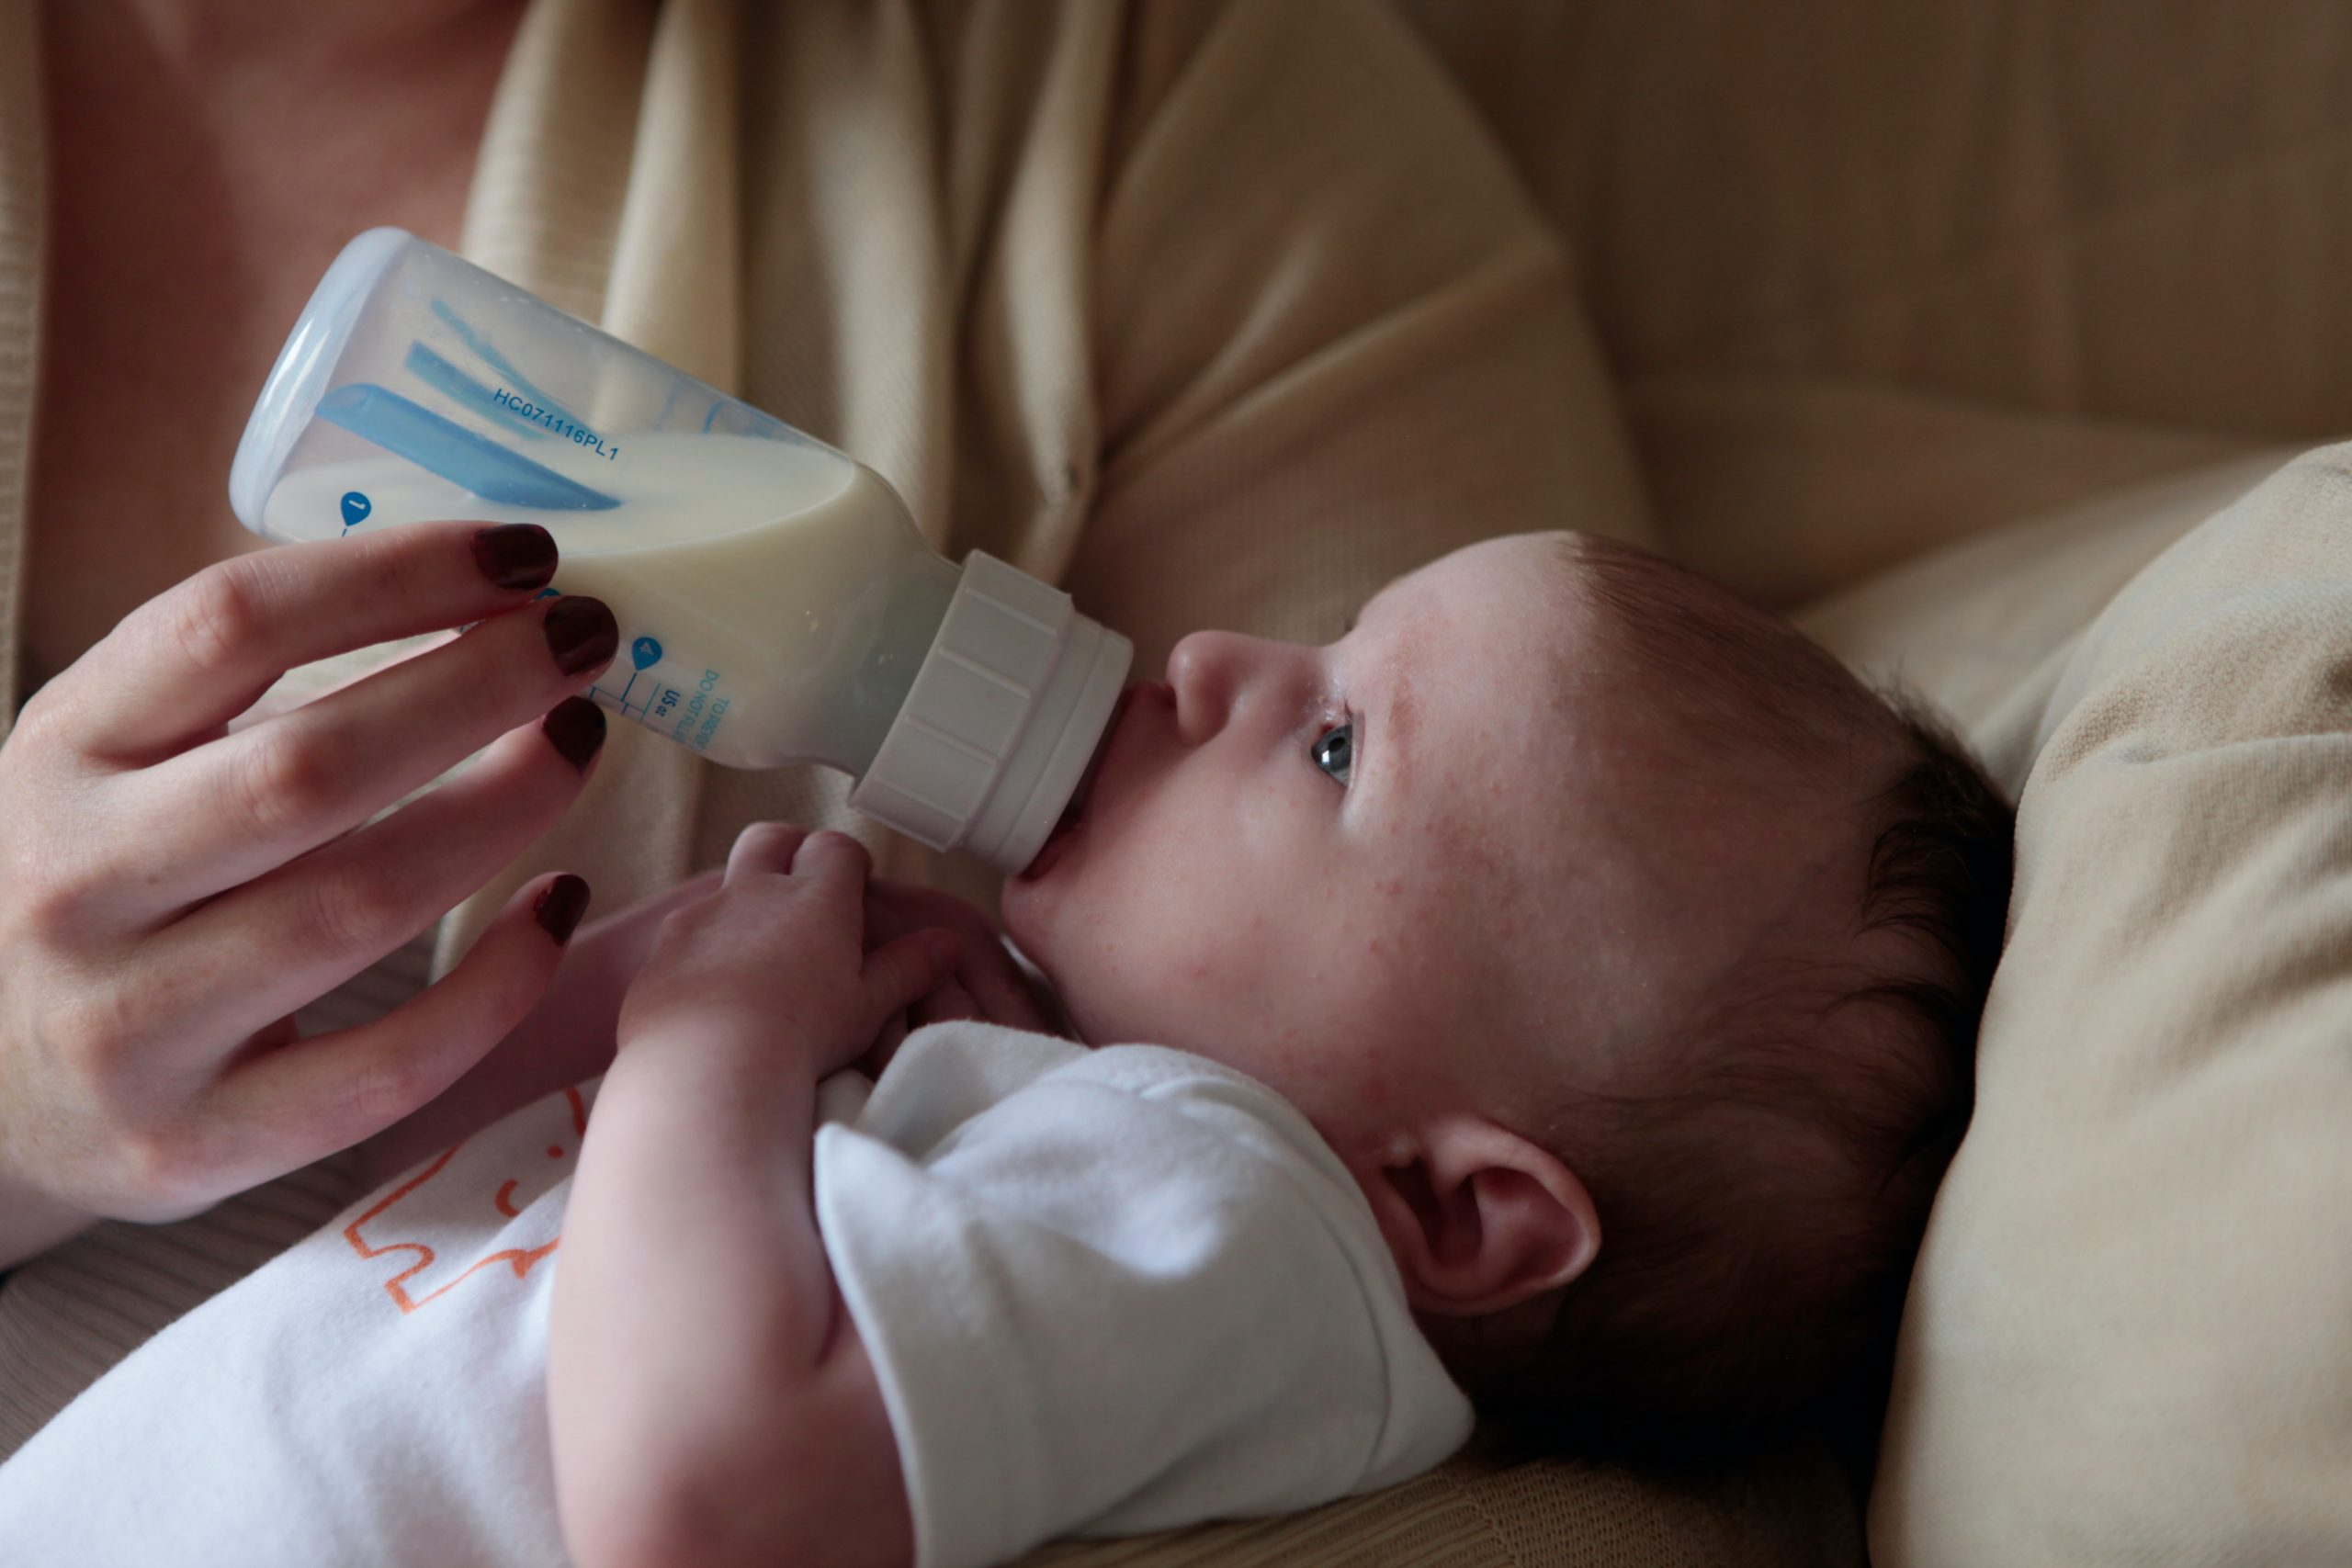 Image of a baby feeding from a bottle to represent our article entitled BabyBety's Top Picks For The Best Baby Products You Need